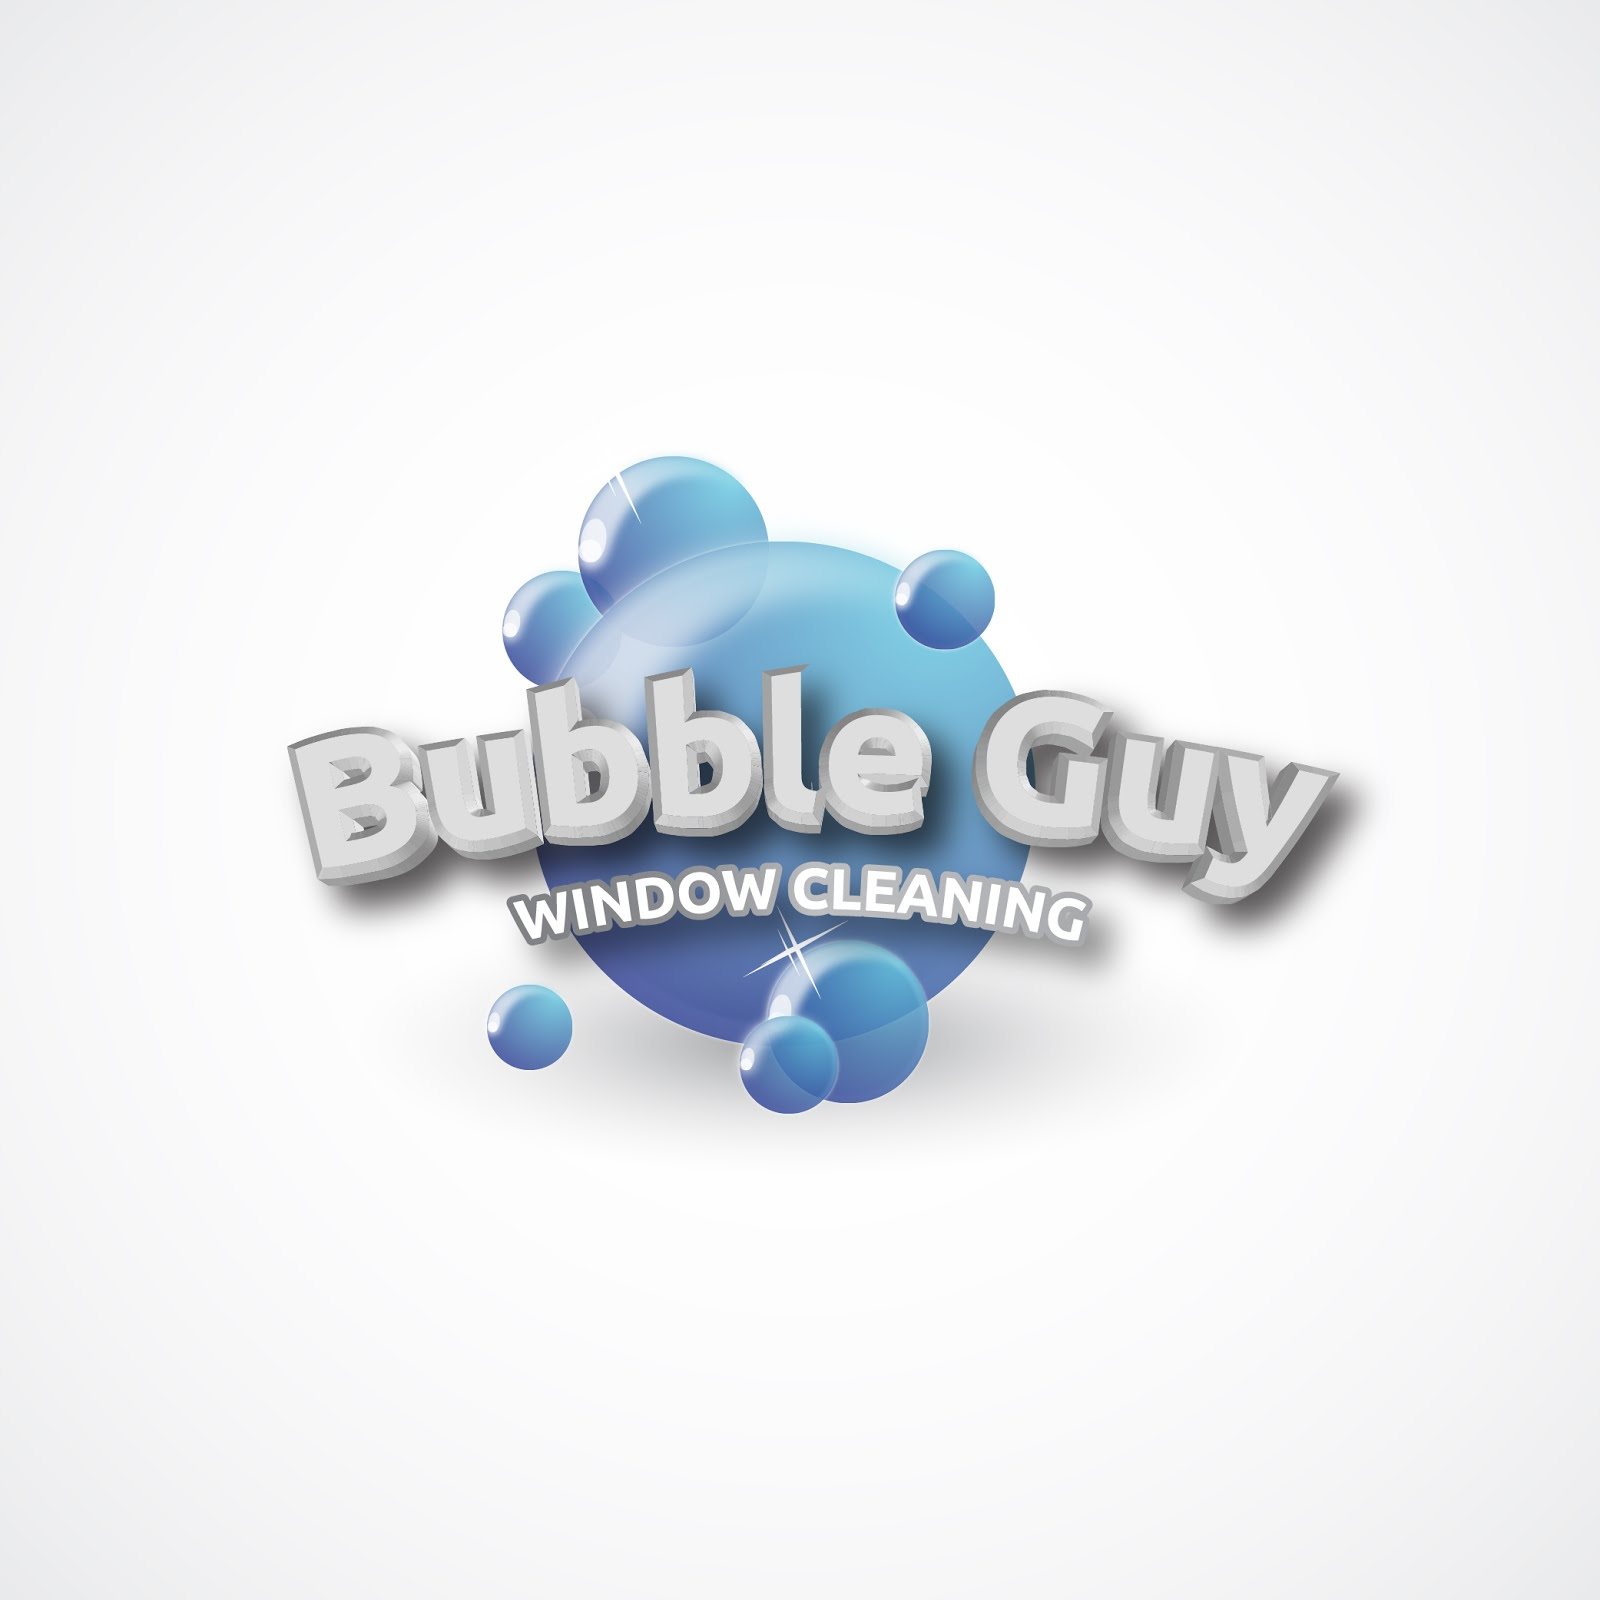 The Bubble Guy